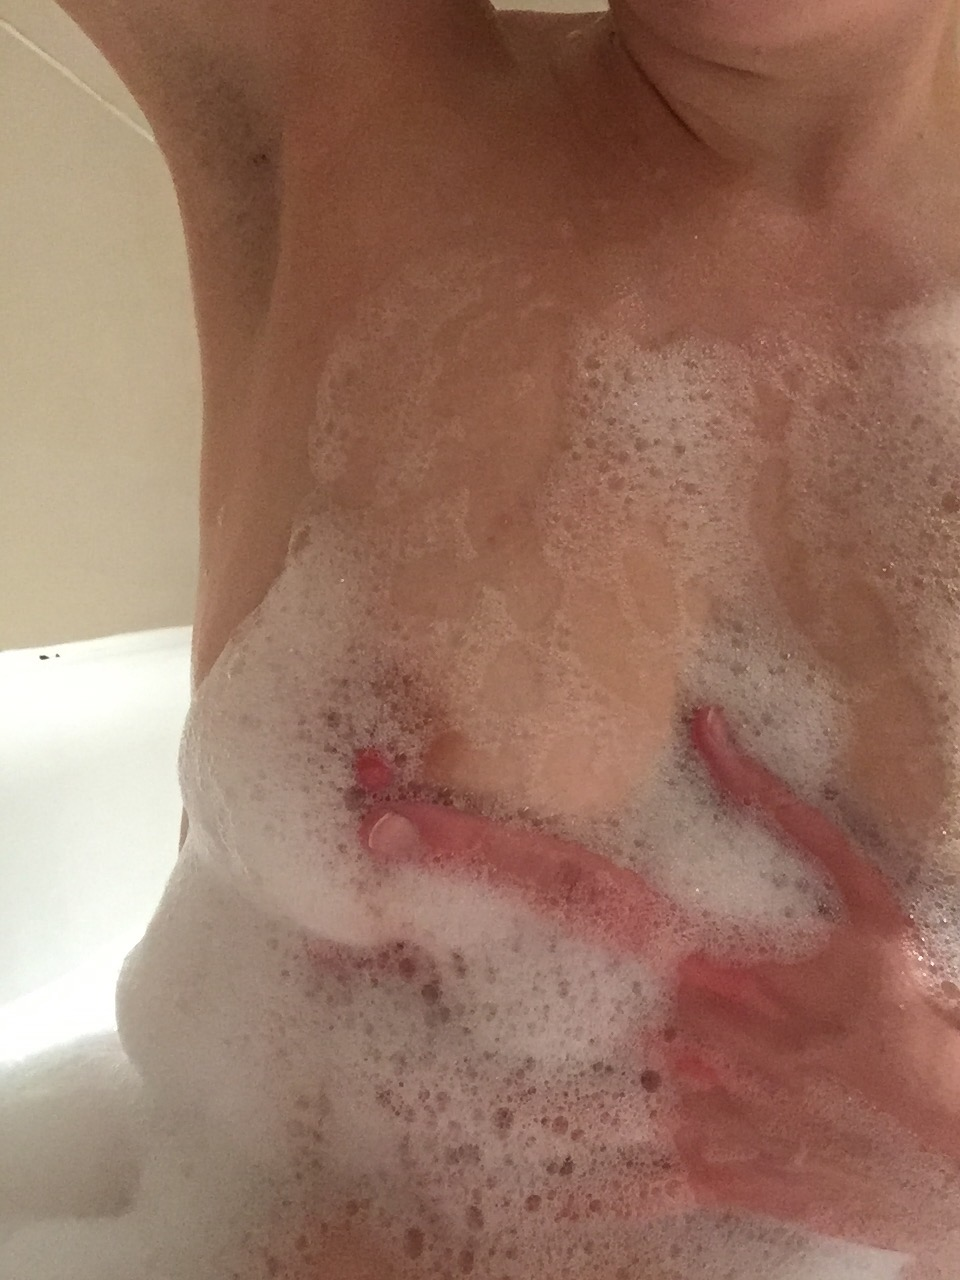 Bubbles - an image of me in the shower